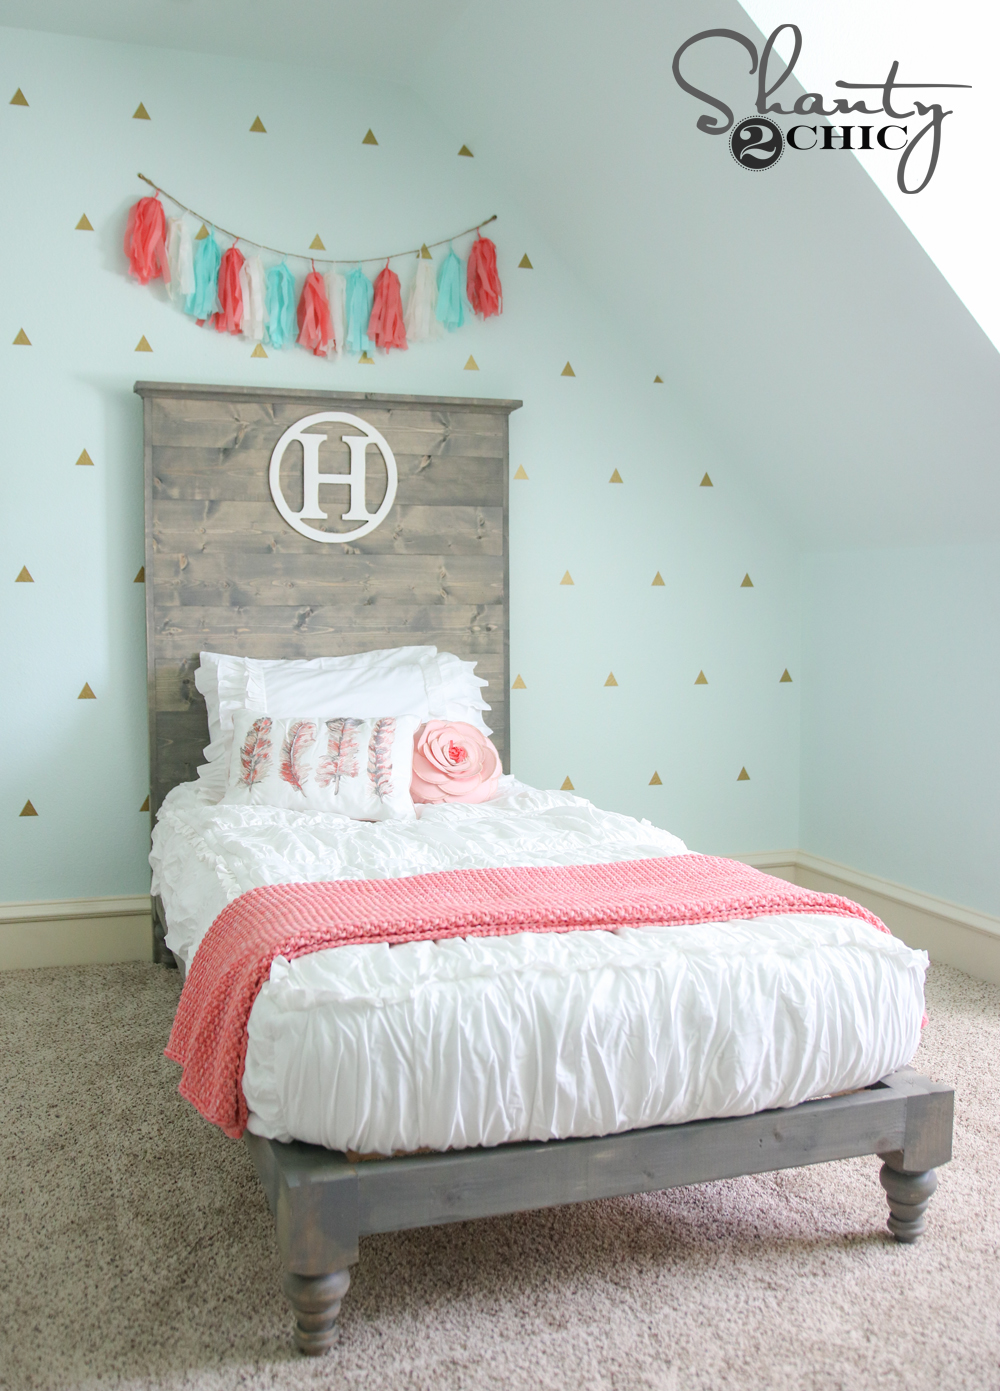 Best Kitchen Gallery: Diy Twin Platform Bed And Headboard Shanty 2 Chic of Bedroom Headboards Designs  on rachelxblog.com